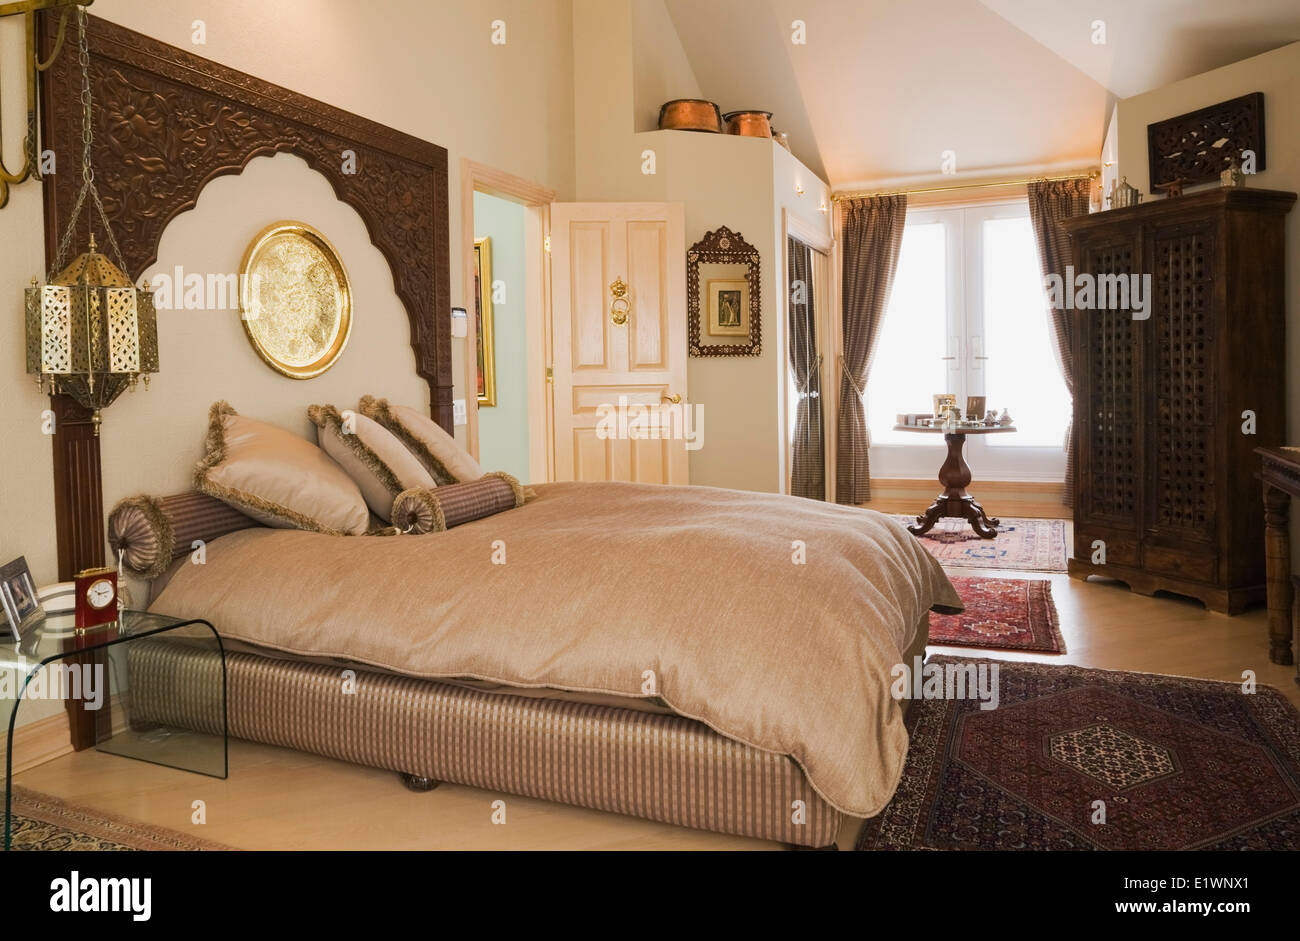 Queen Size Bed In The Moroccan Style Decorated Master Bedroom Inside A Residential Home Quebec Canada This Image Is Property